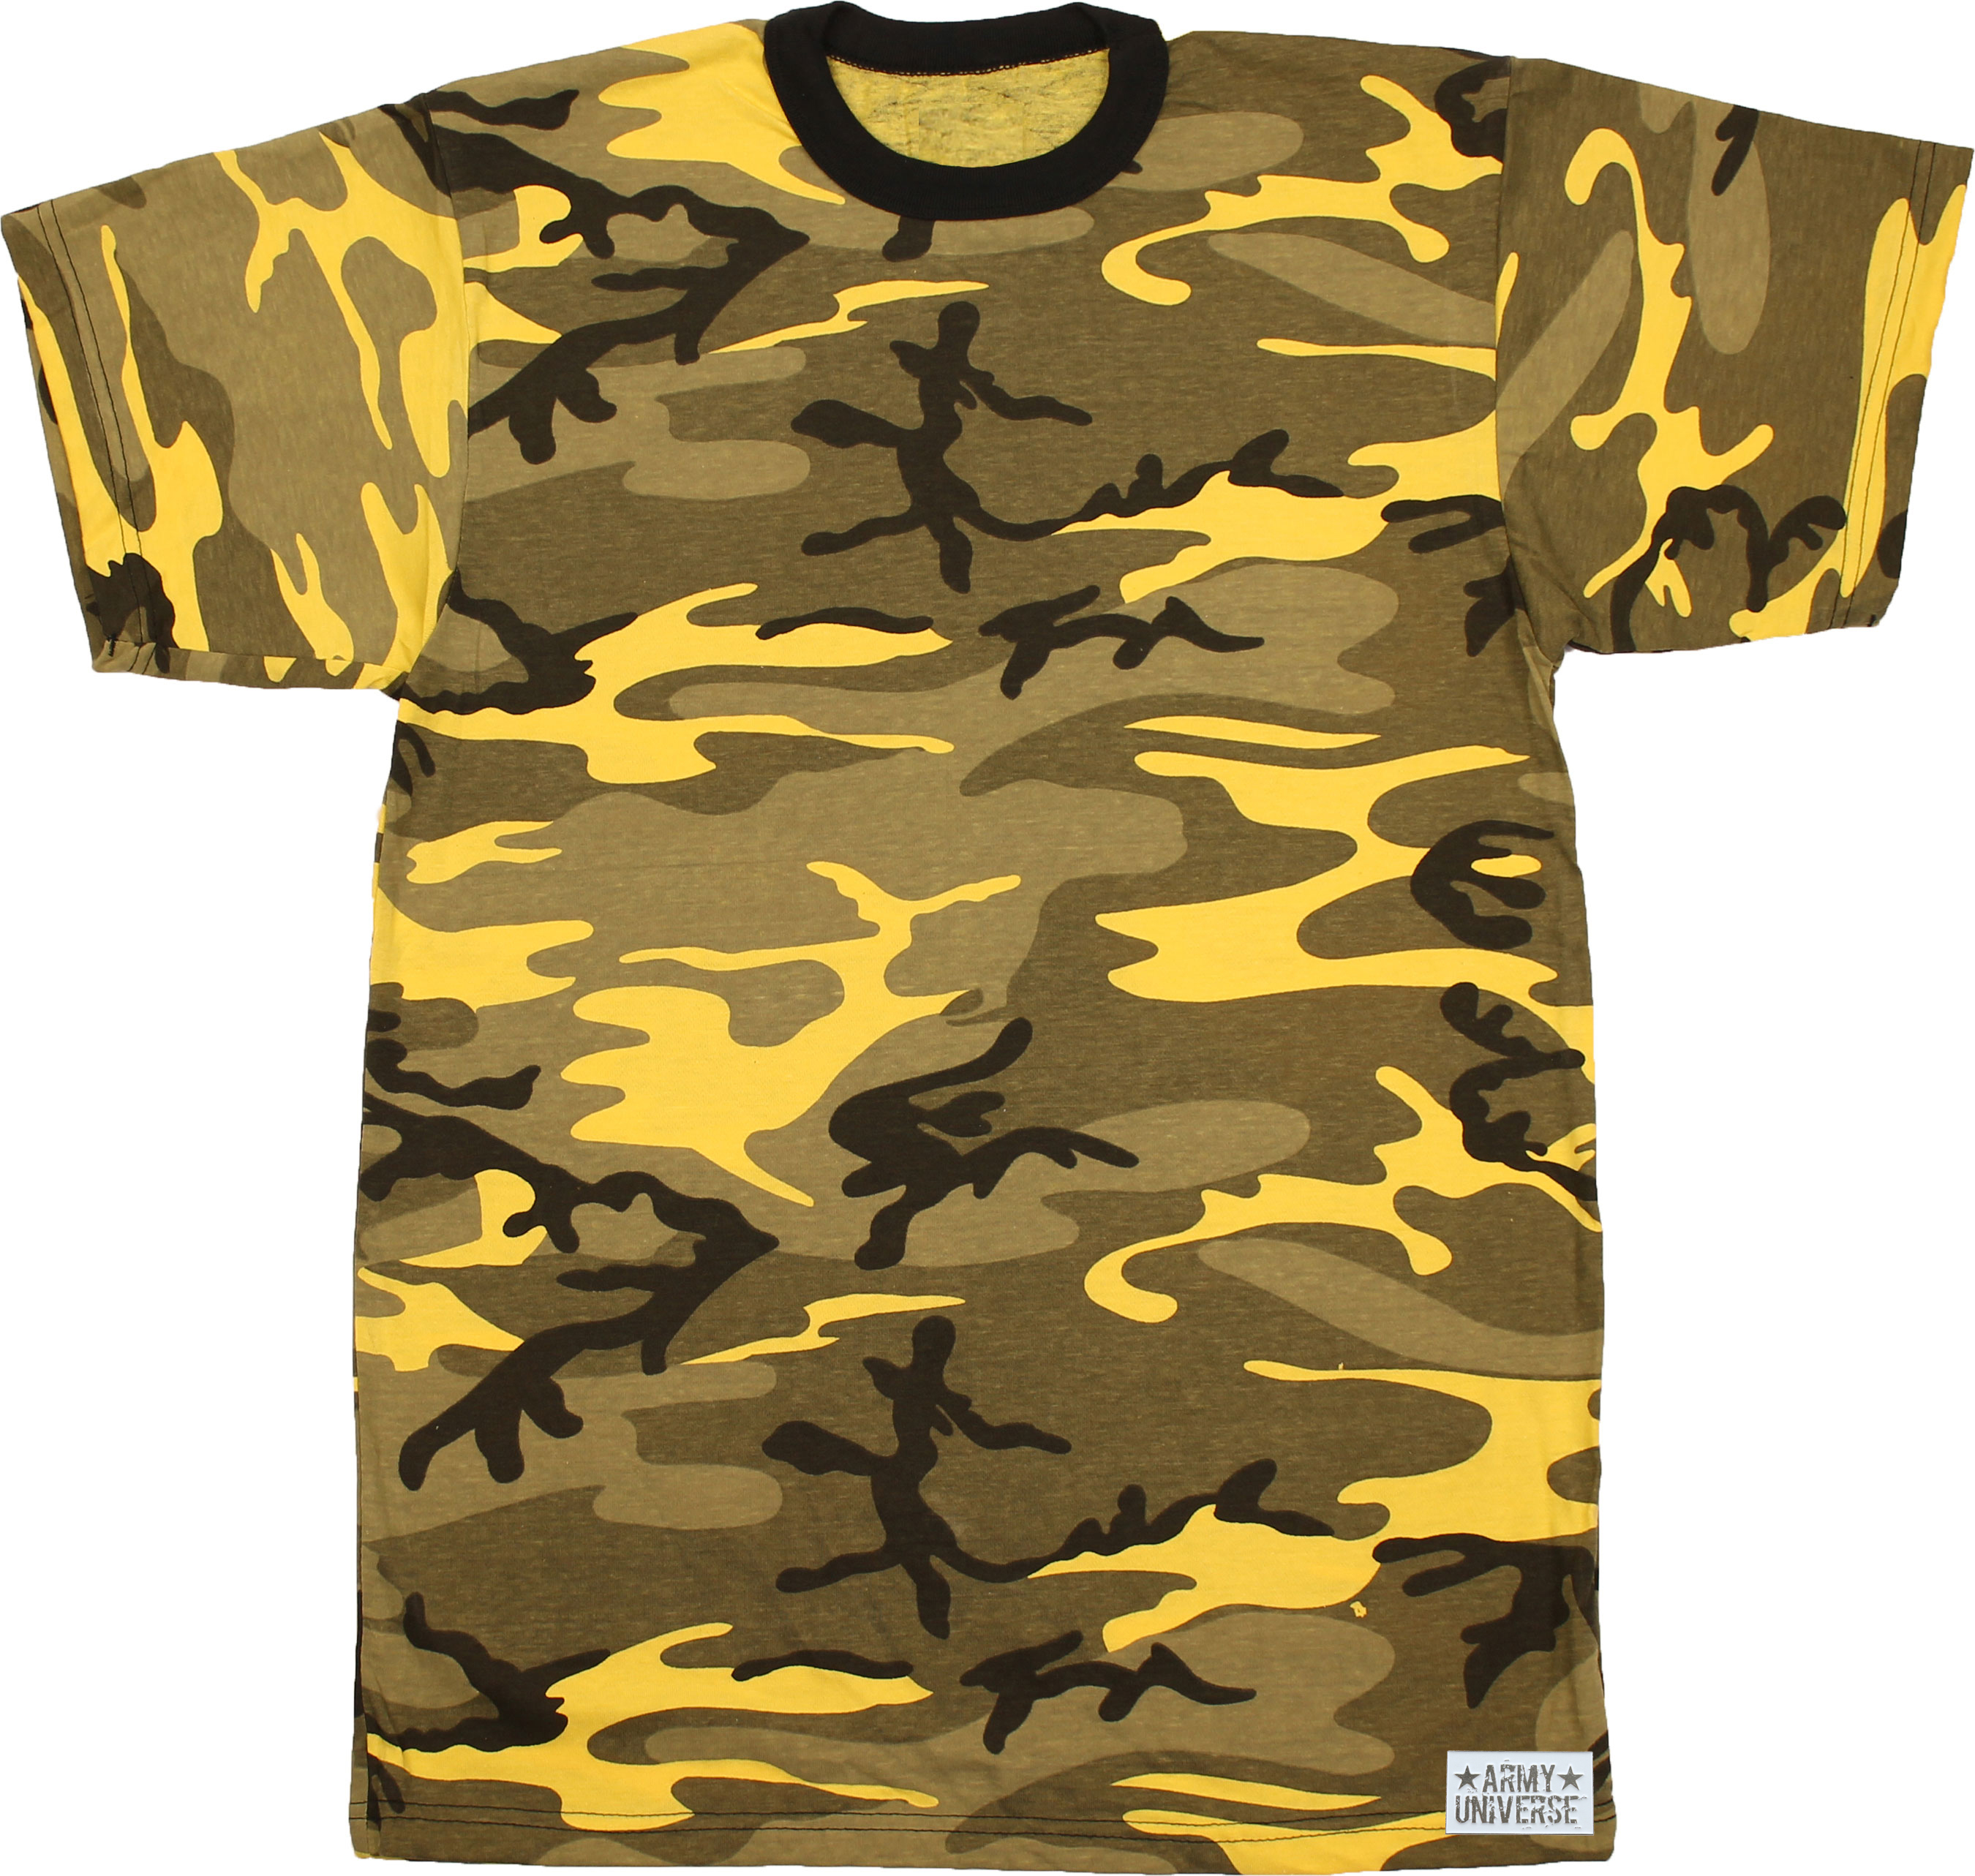 Army Universe - Tiger Stripe Camouflage Short Sleeve T-Shirt with ARMY  UNIVERSE Pin - Size Medium (37